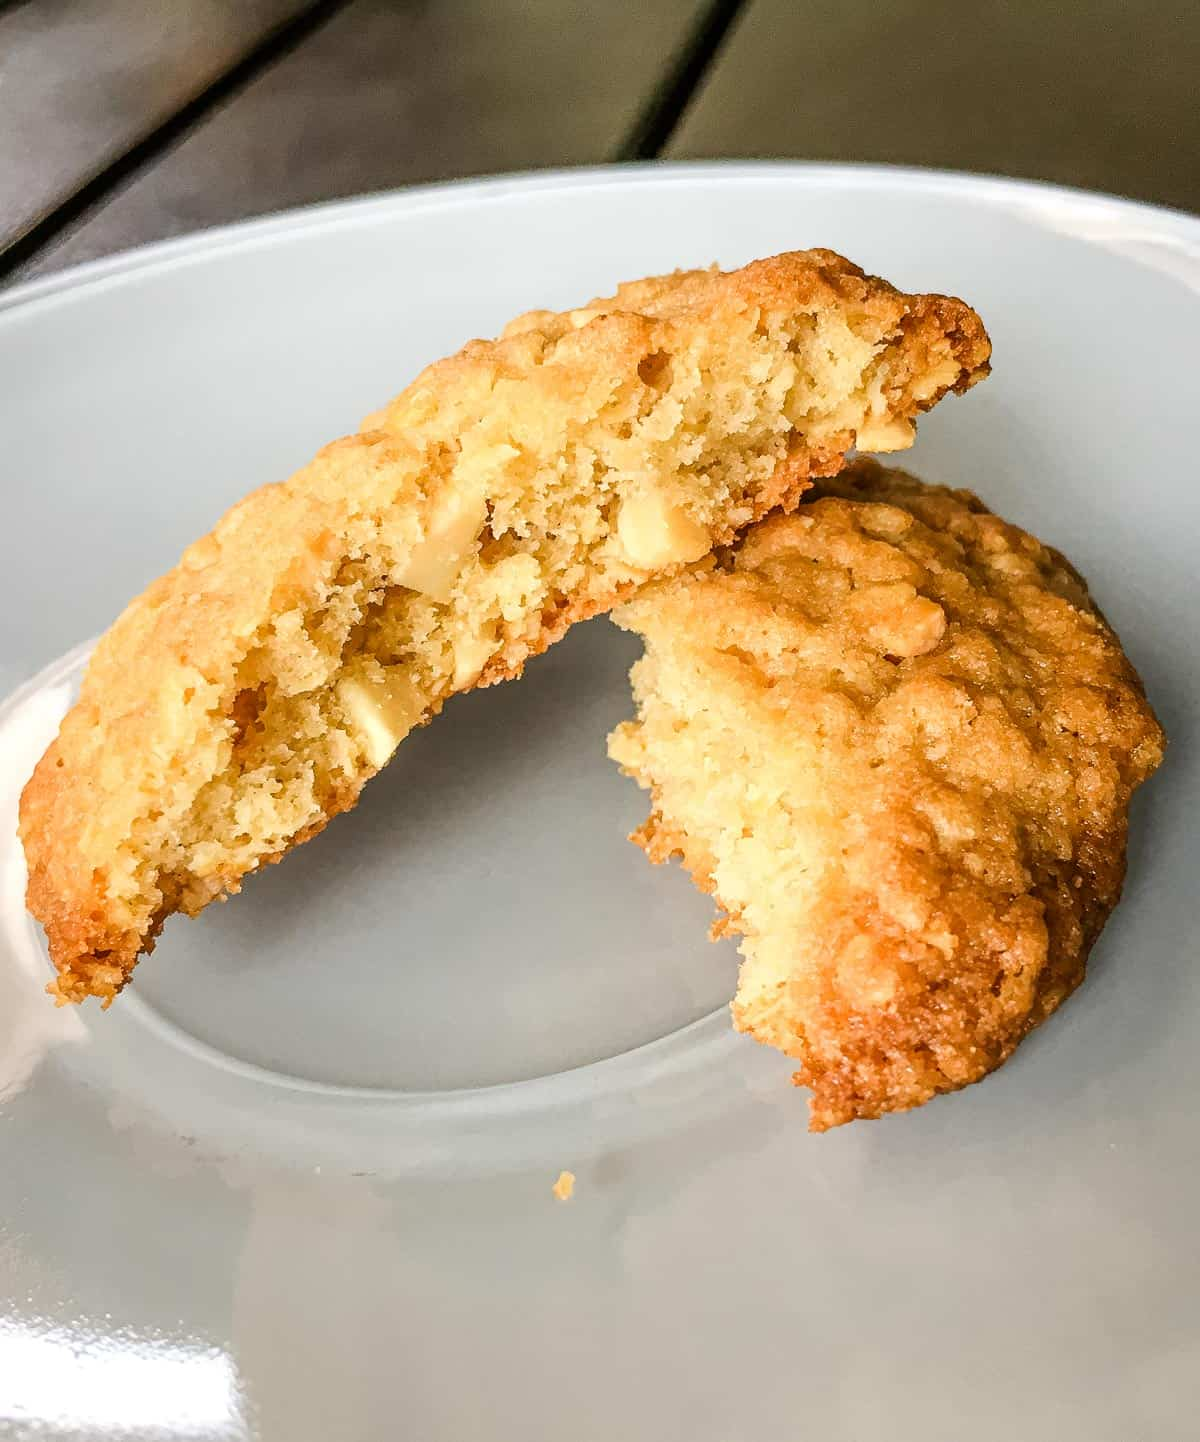 A round cookie broken into 2 on a white plate